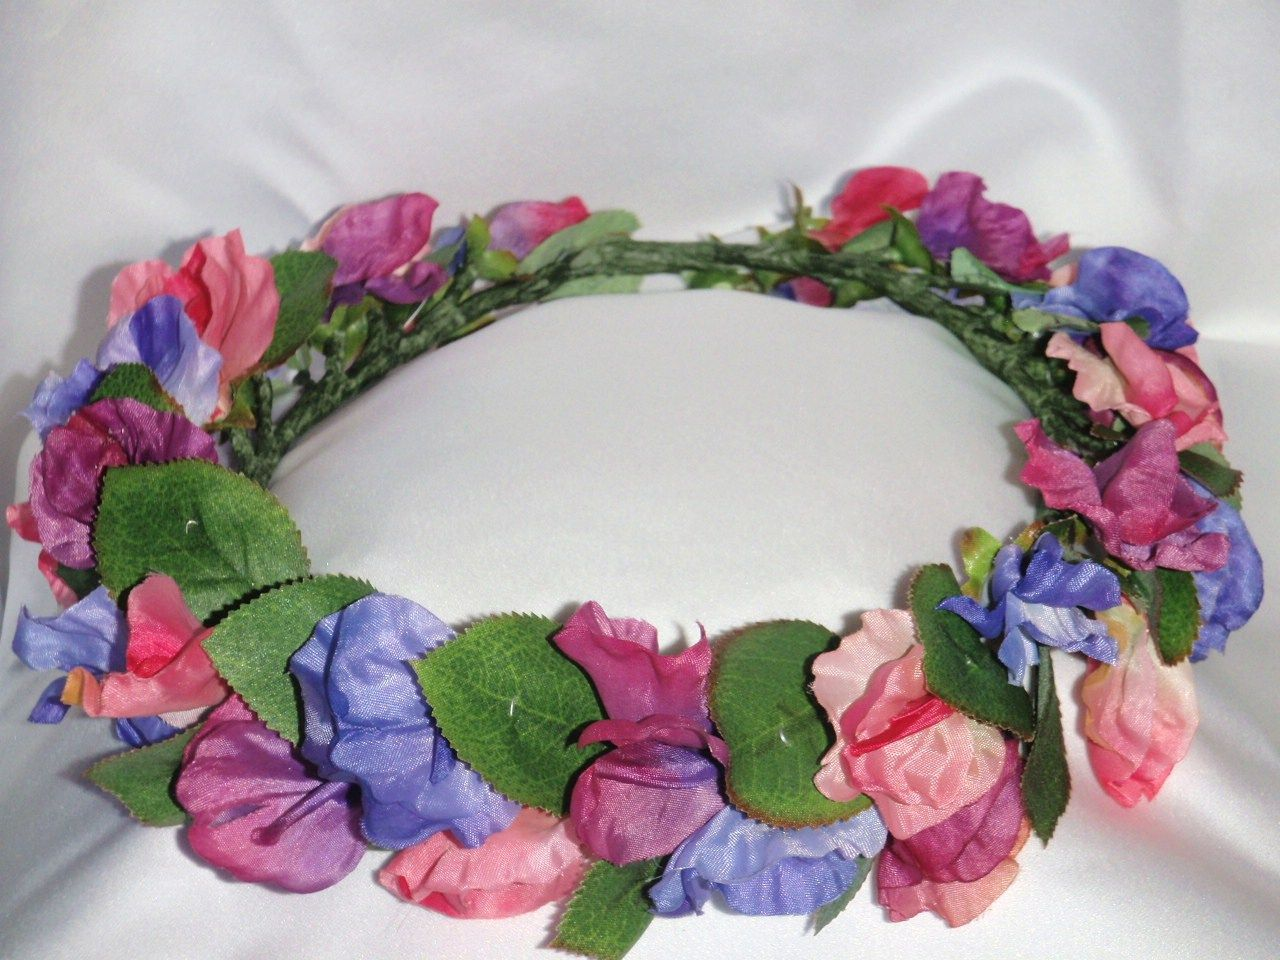 Flower Crown Made With Silk Sweet Pea Flowers Sweet Pea Flowers Flower Crown Floral Wreath